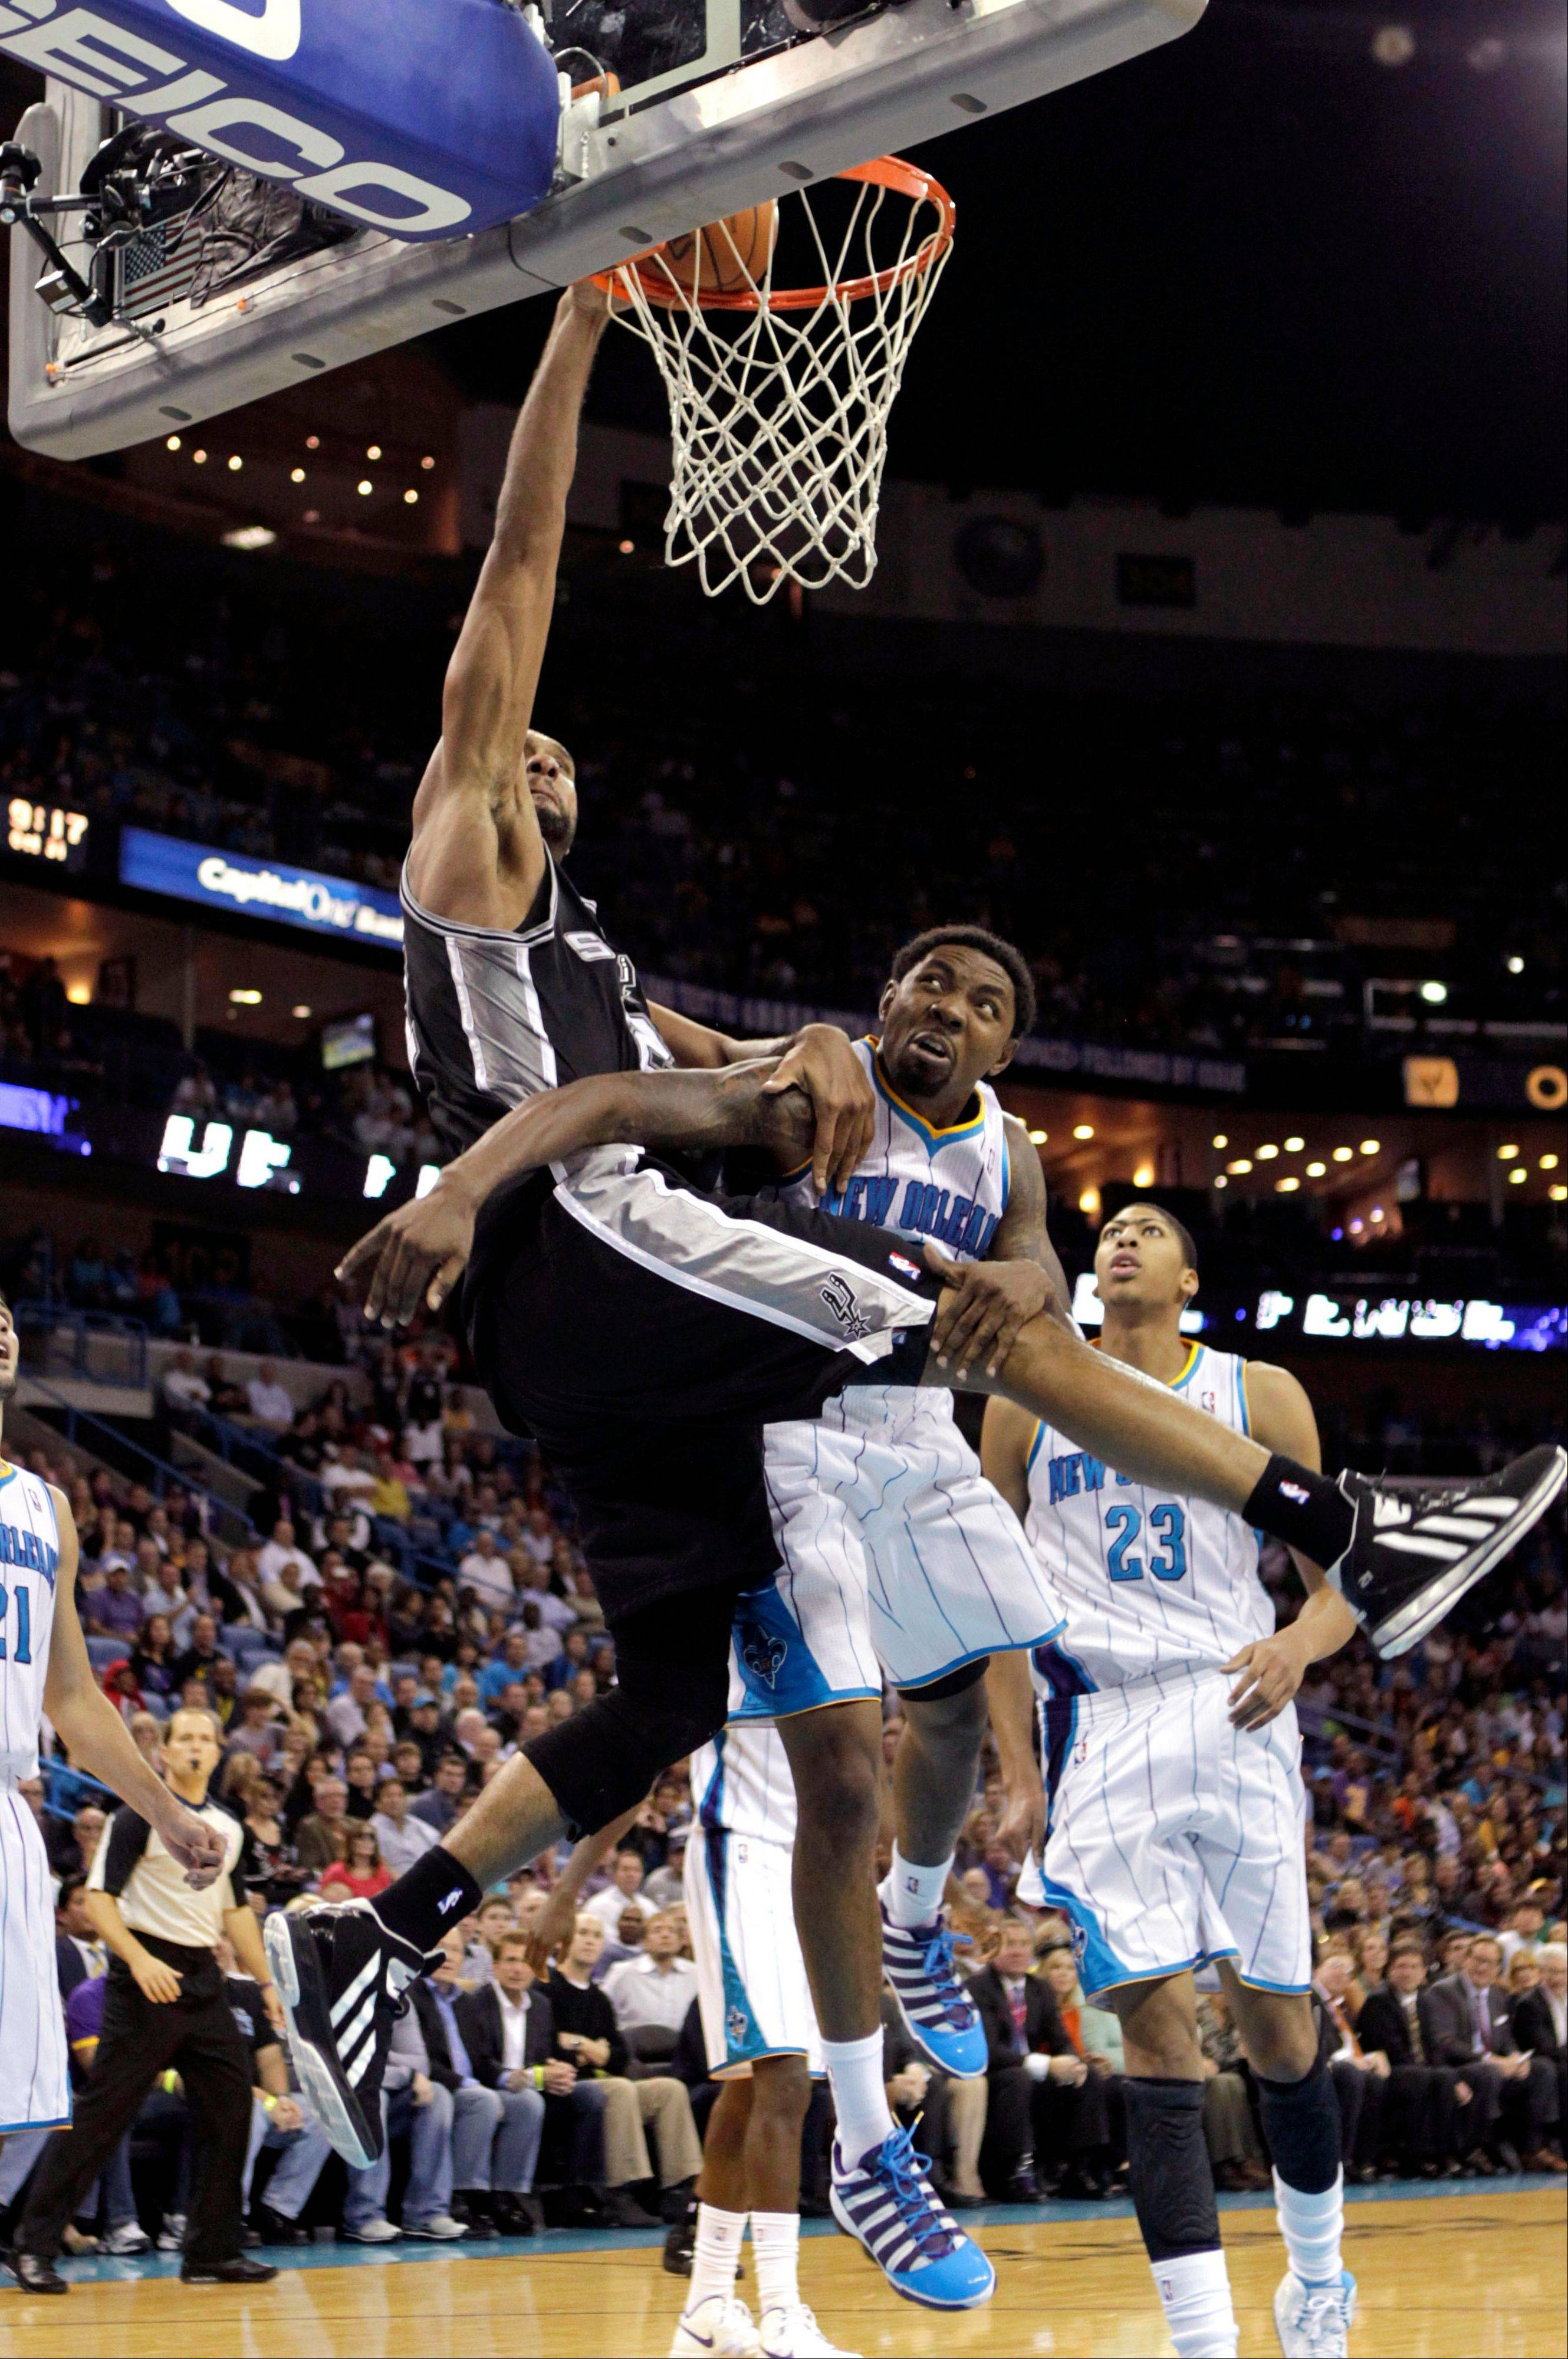 San Antonio Spurs power forward Tim Duncan goes to the basket against New Orleans Hornets shooting guard Roger Mason Jr., right, Wednesday during the second half in New Orleans. The Spurs won 95-99.